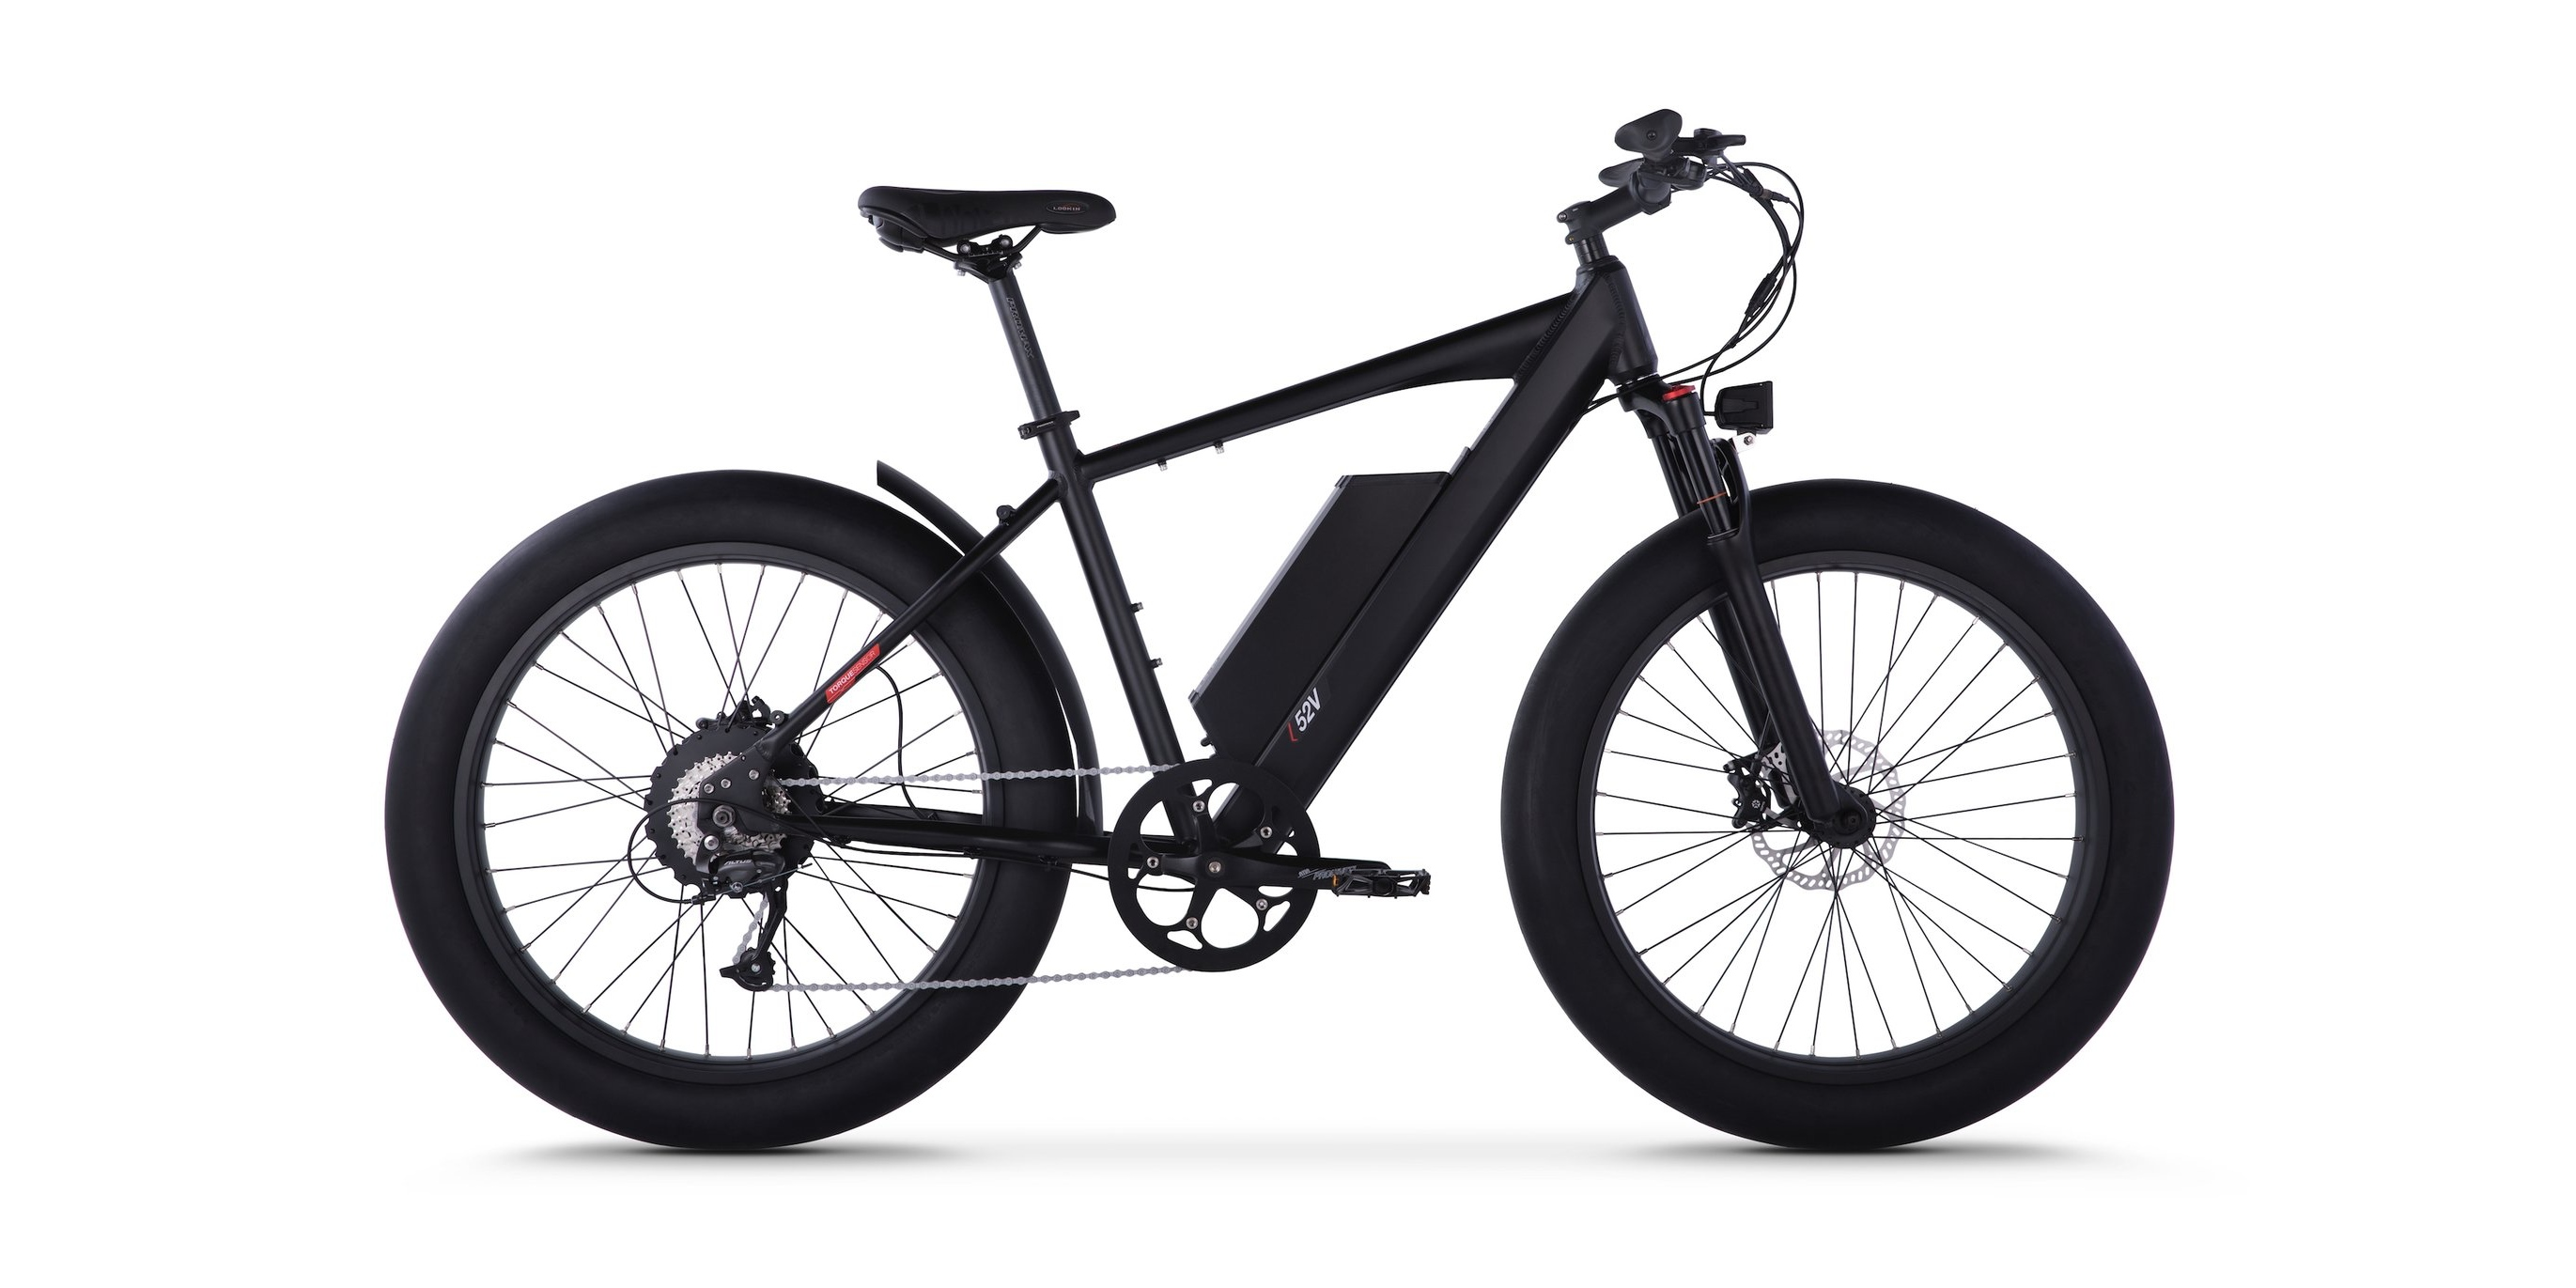 Juiced Bikes pushes the envelope with a new 40 mph fat tire electric bicycle